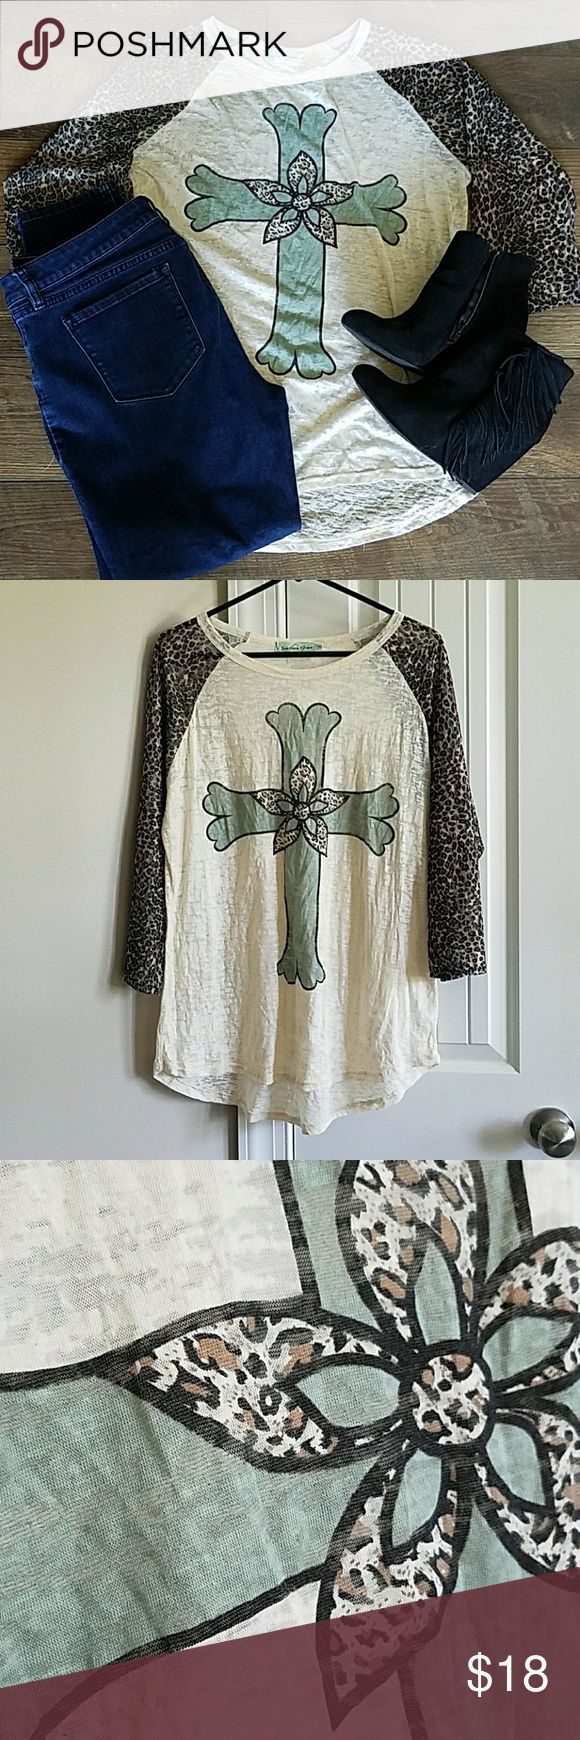 Animal Print Cross Top 3/4 length sleeve Soft and comfortable cross top with mesh animal print sleeve. Top is distressed and may need a cami underneath. Smoke free/puppy friendly home. Southern Grace Tops Blouses